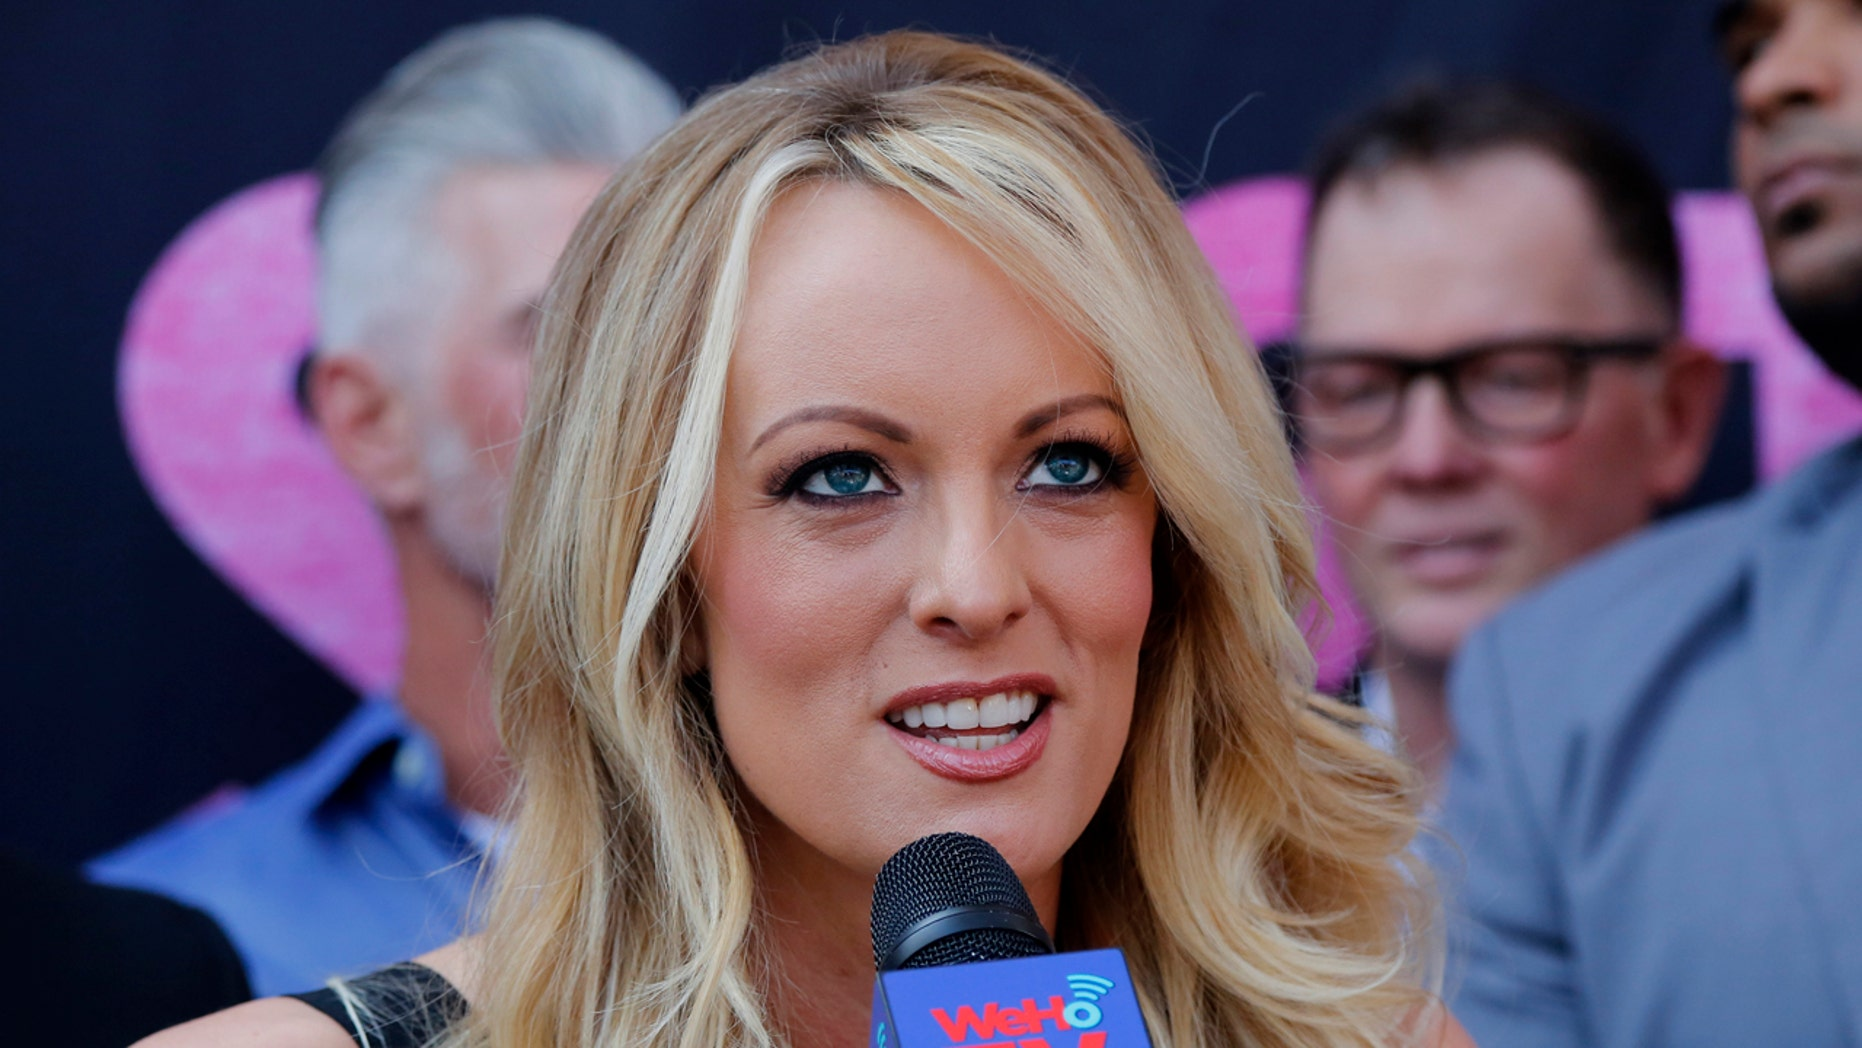 Porn actress Stormy Daniels speaks during a ceremony for her receiving a City Proclamation and Key to the City in West Hollywood, Calif.,  May 23, 2018.